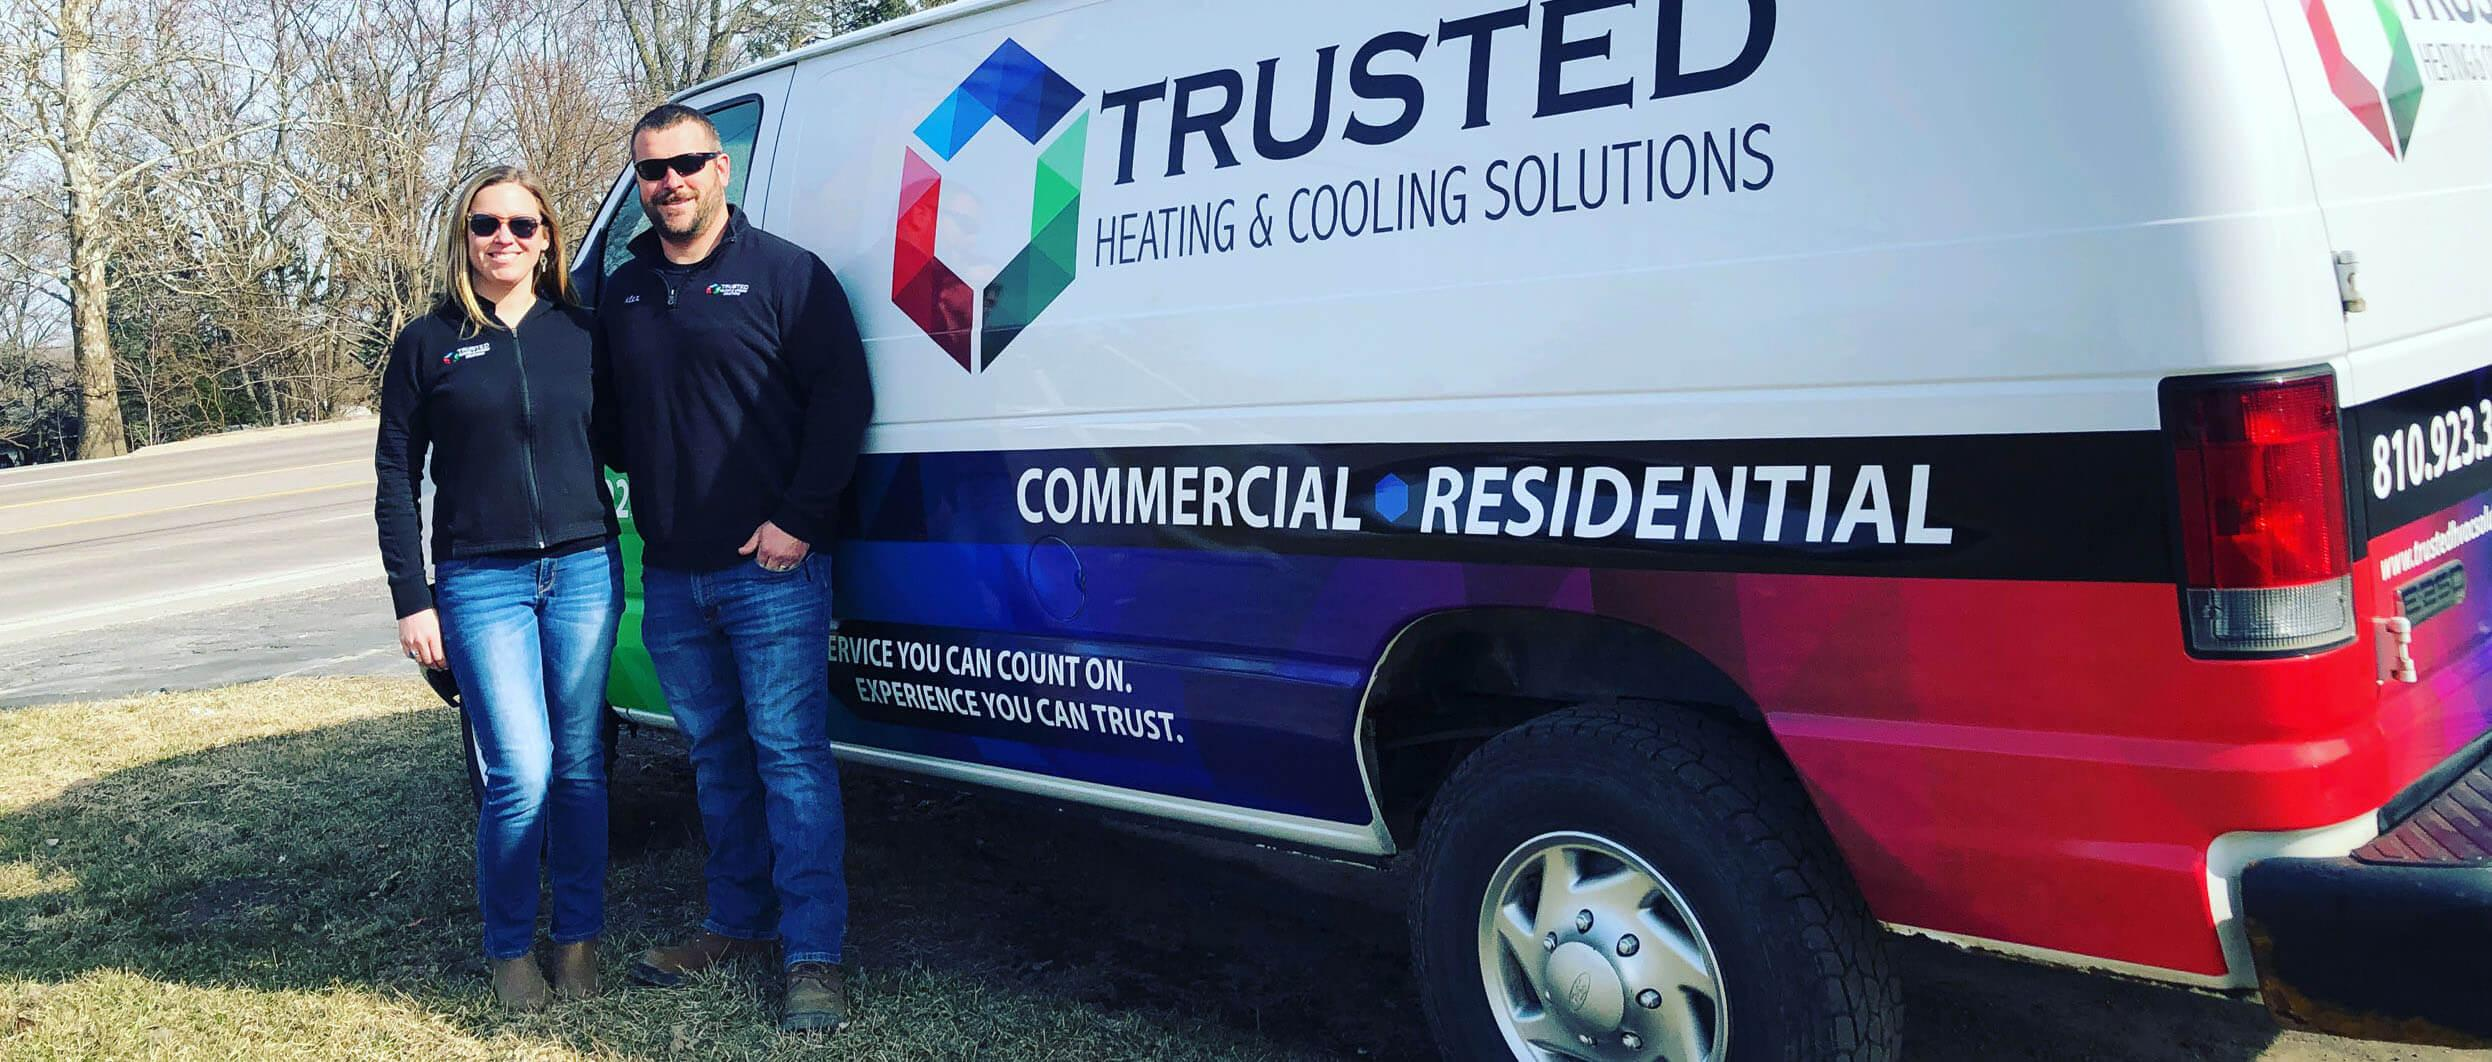 Trusted heating cooling solutions Ann Arbor furnace repair